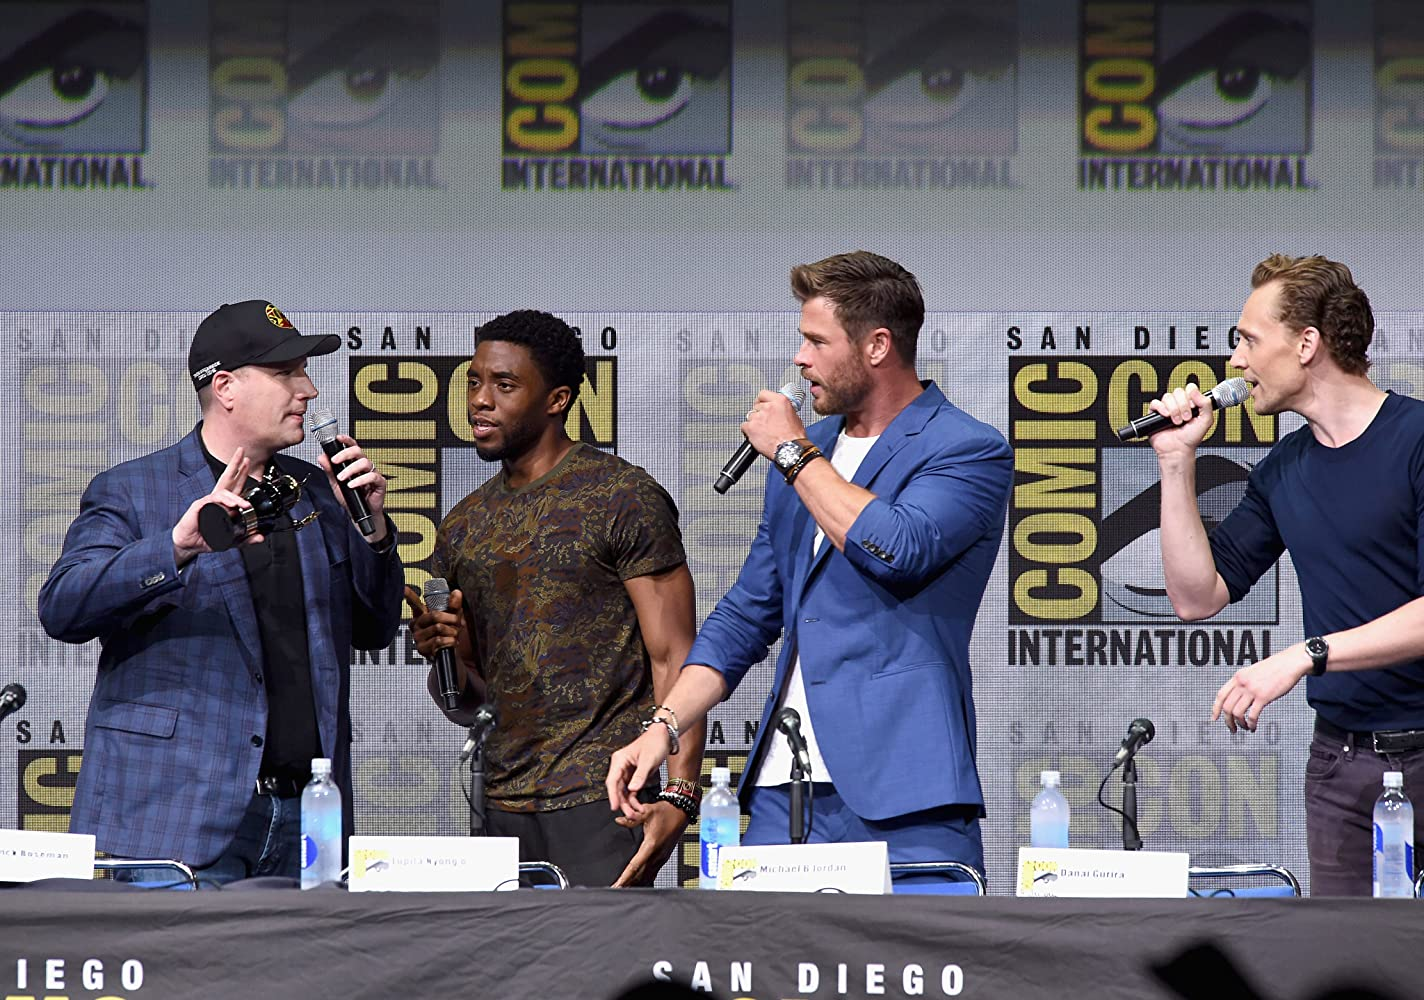 Kevin Feige, Tom Hiddleston, Chris Hemsworth, and Chadwick Boseman at an event for 'Avengers: Infinity War'. Photo by Kevin Winter - © 2017 Getty Images